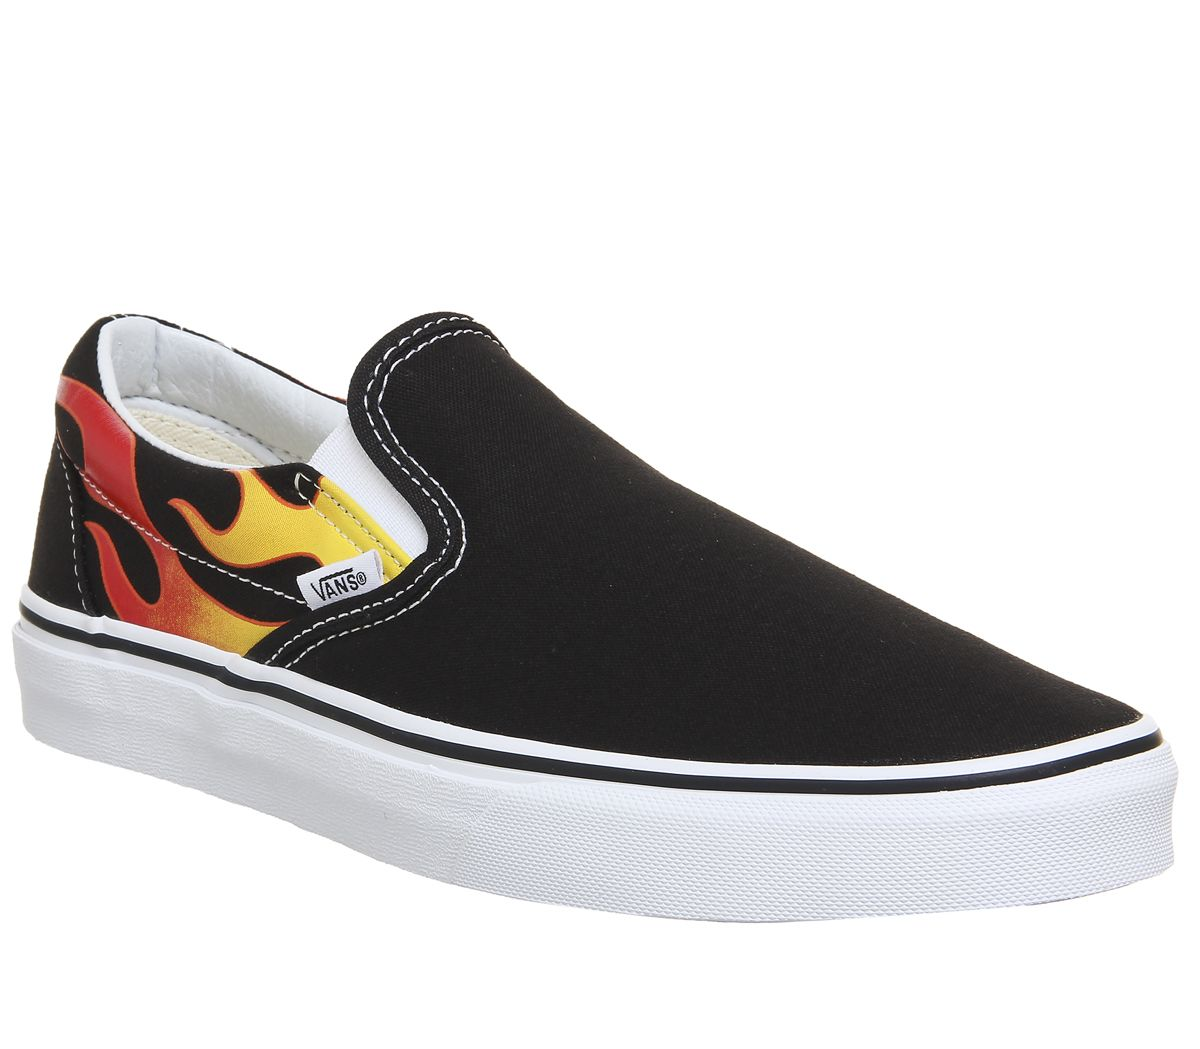 f3fe3bb2c4 Vans Vans Classic Slip On Trainers Black White Flame - His trainers